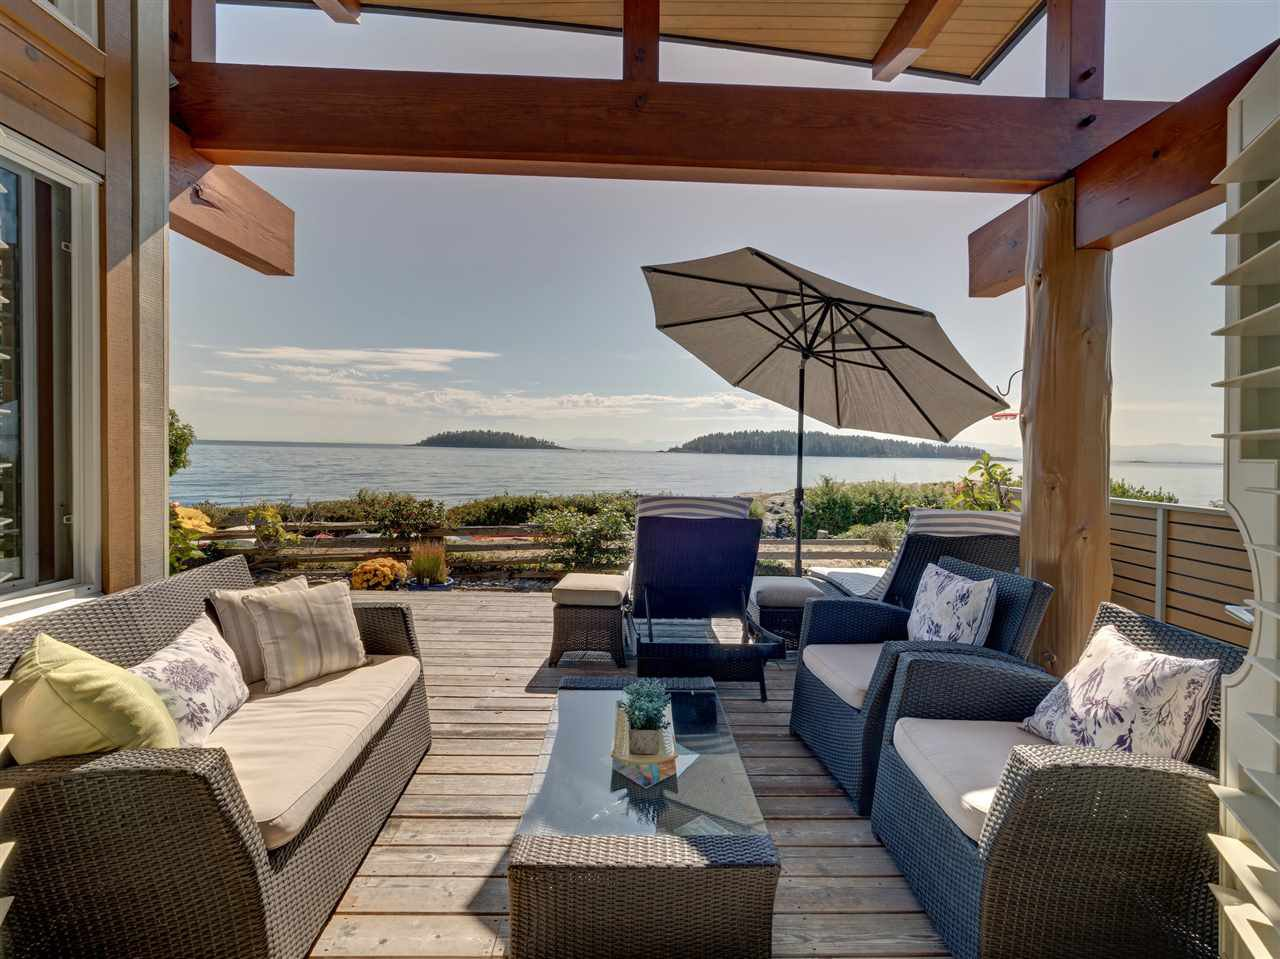 Breathtaking ocean views from the large decks.  Enjoy the ever changing scenery from over 600sf of decks.